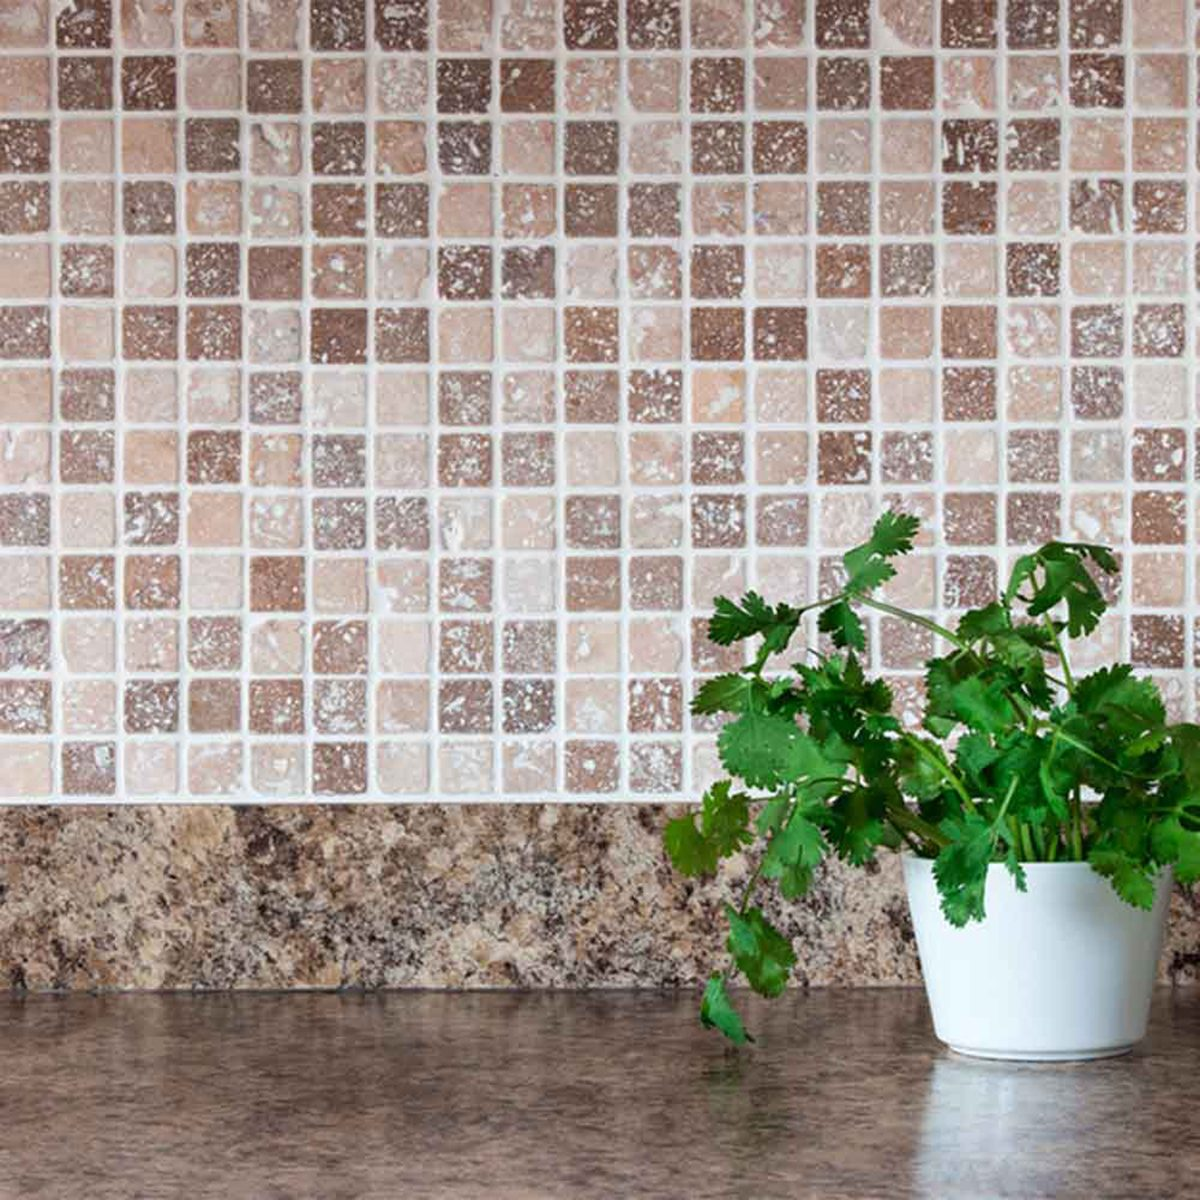 Stone counter with a matching grey and brown tiled backsplash